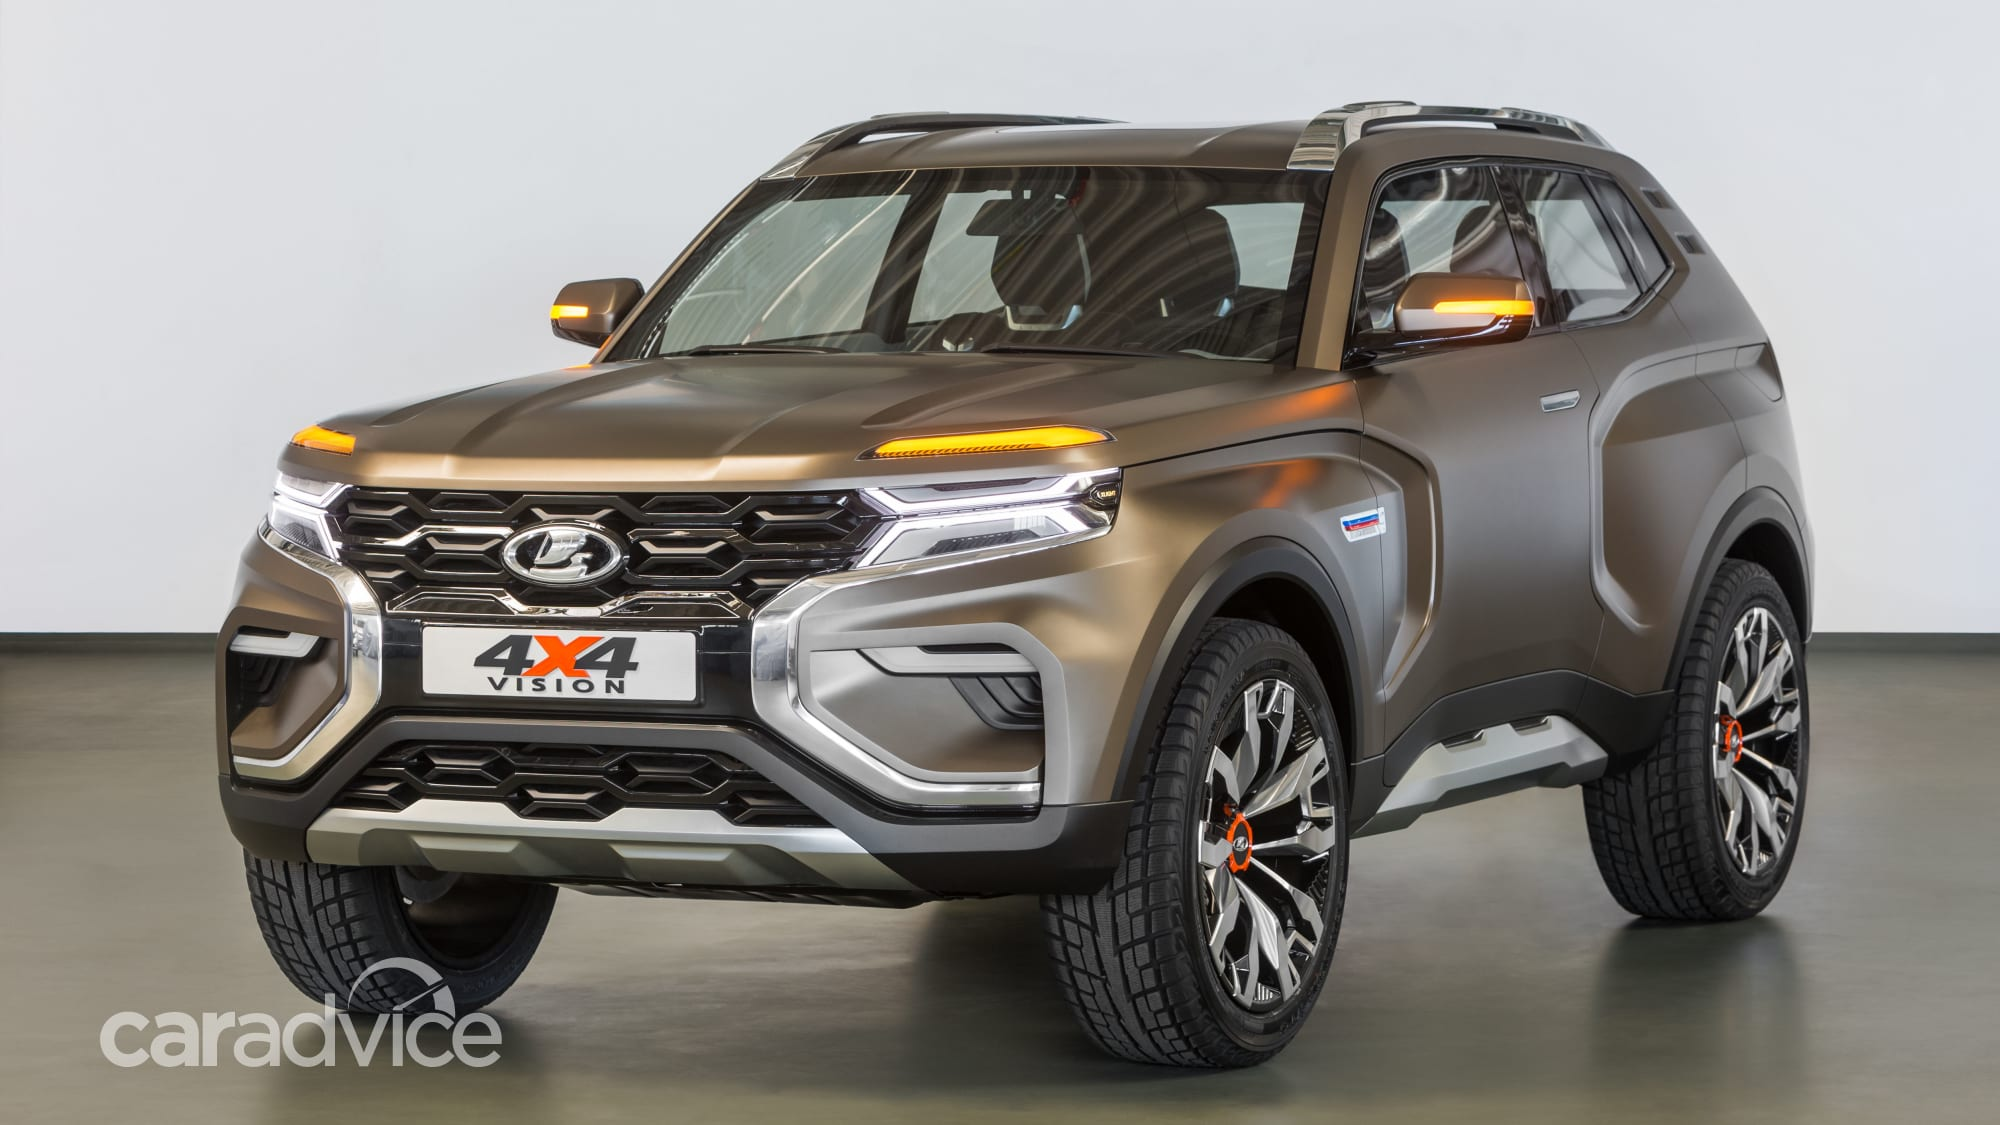 2020 lada niva revealed  caradvice